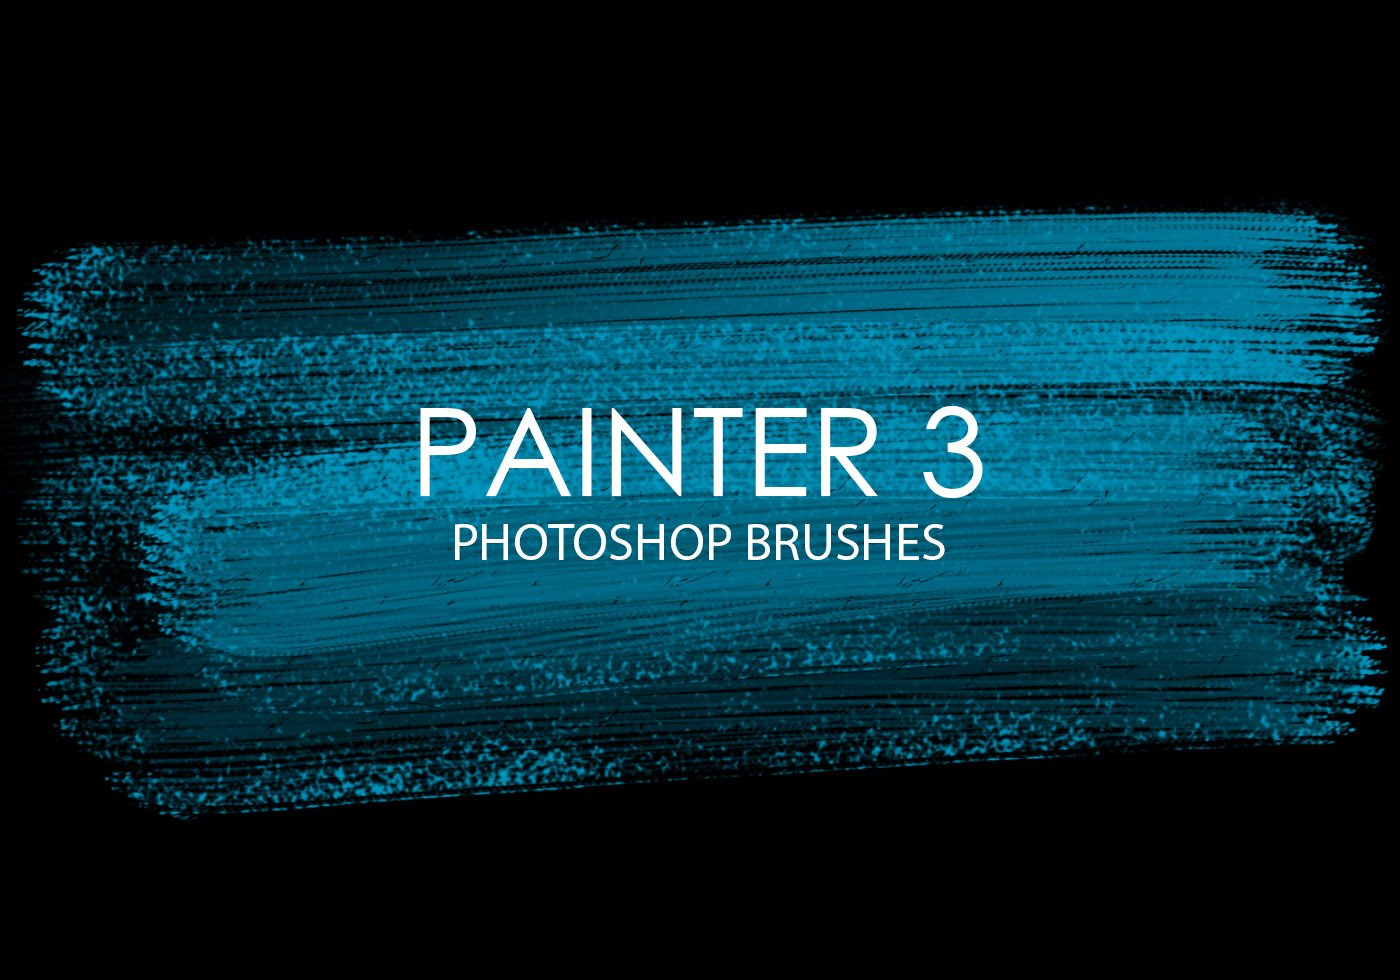 Free Painter Photoshop Brushes 3 - Free Photoshop Brushes ...